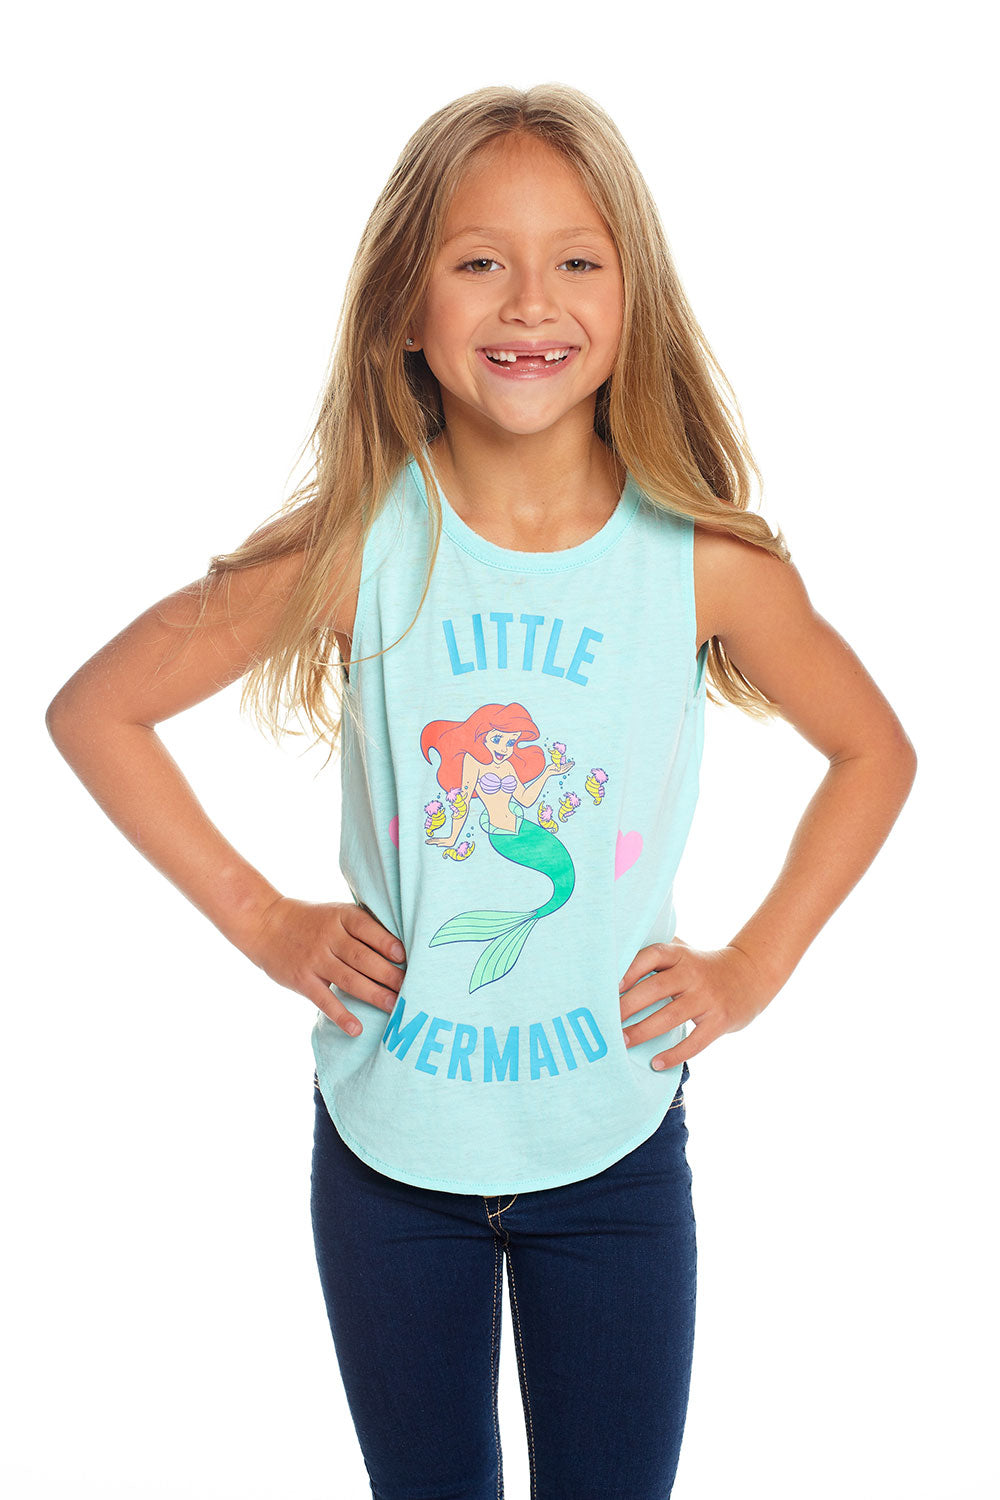 Disney's The Little Mermaid - Little Mermaid Friends GIRLS - chaserbrand